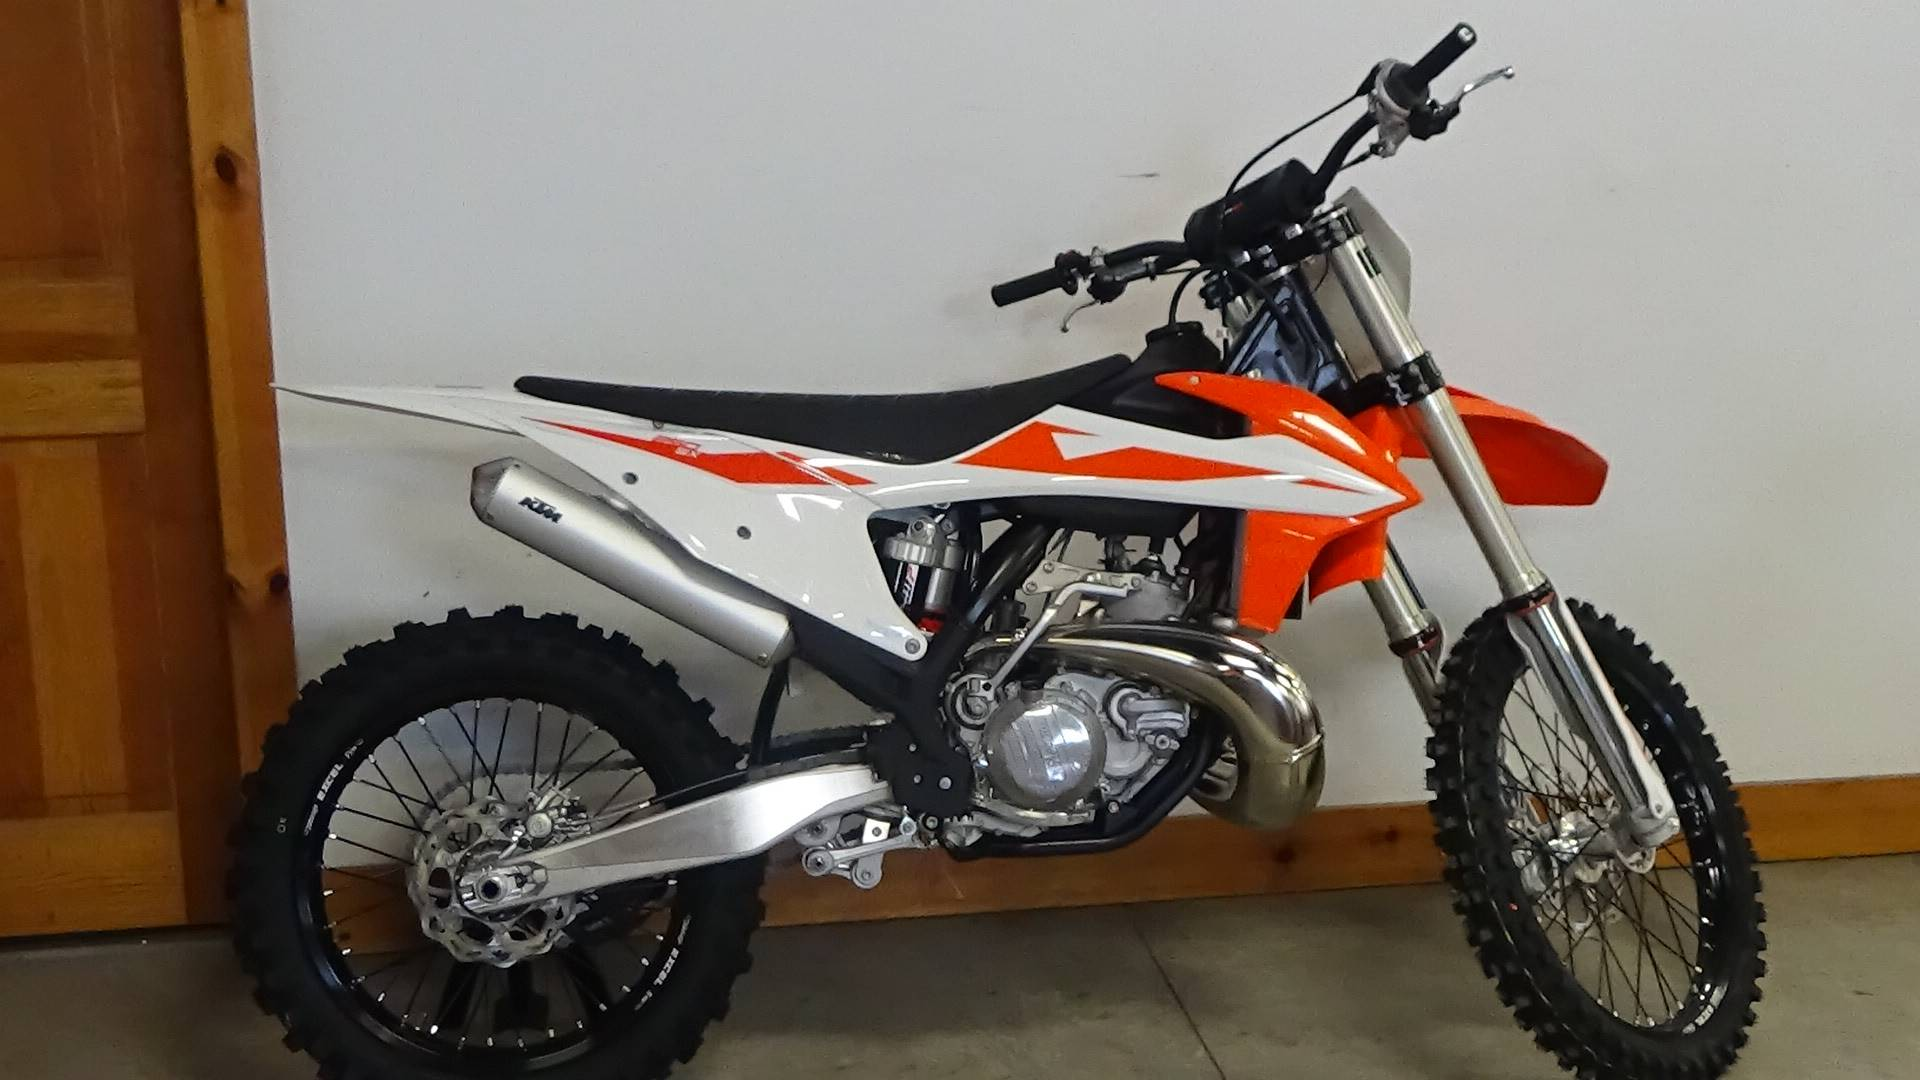 New 2019 KTM 250 SX Motorcycles in Adams, MA | Stock Number